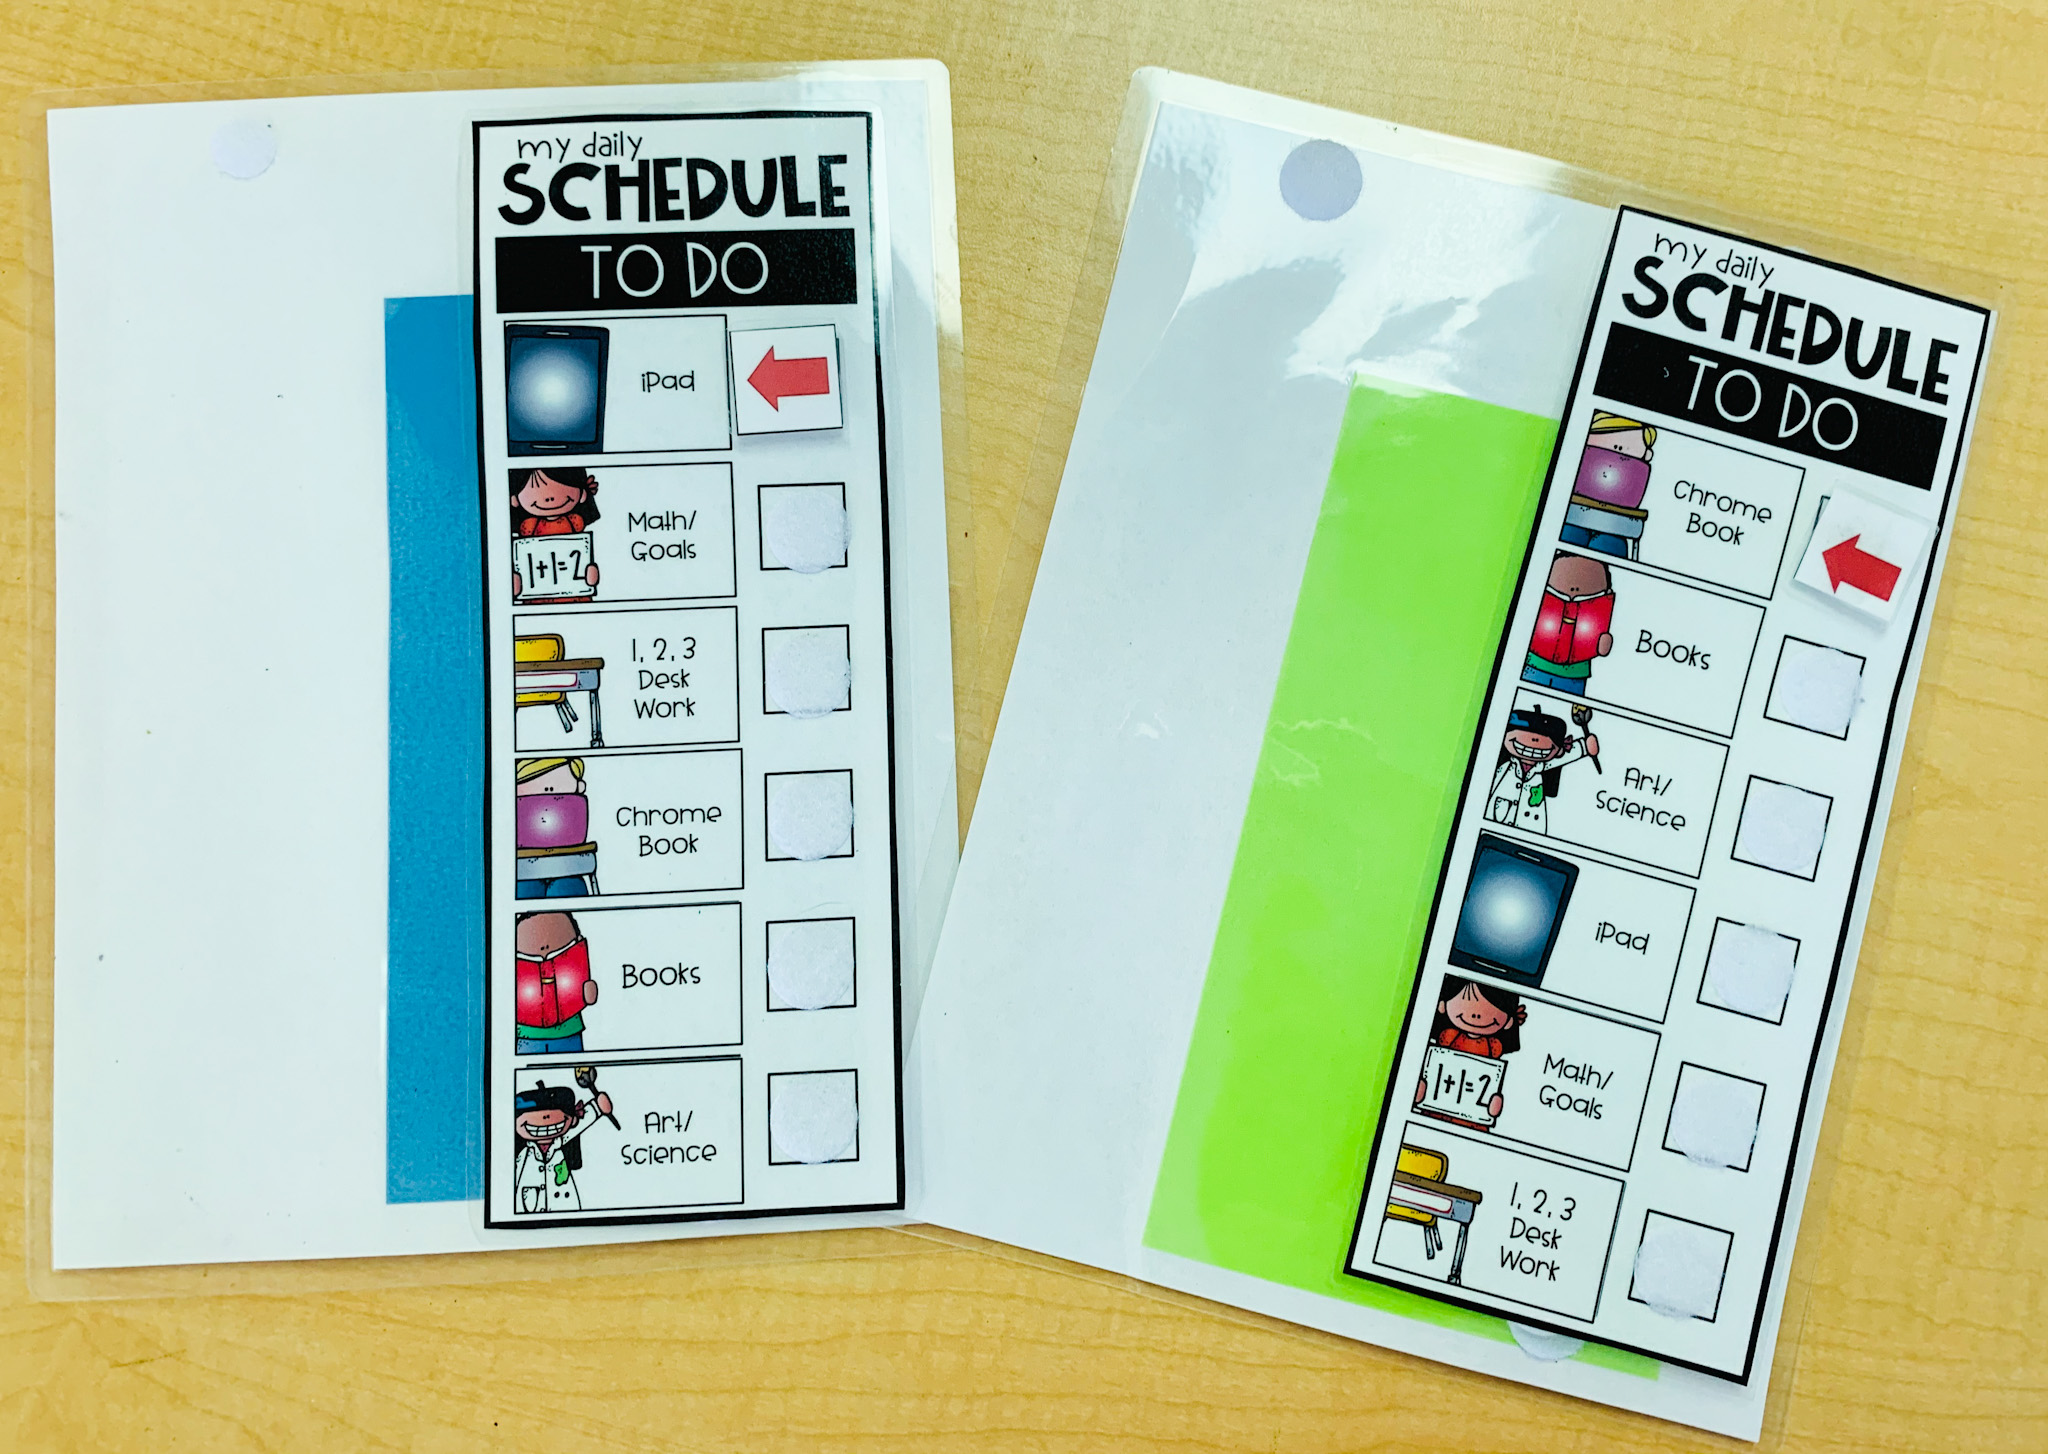 Here is a photo of my student schedules.